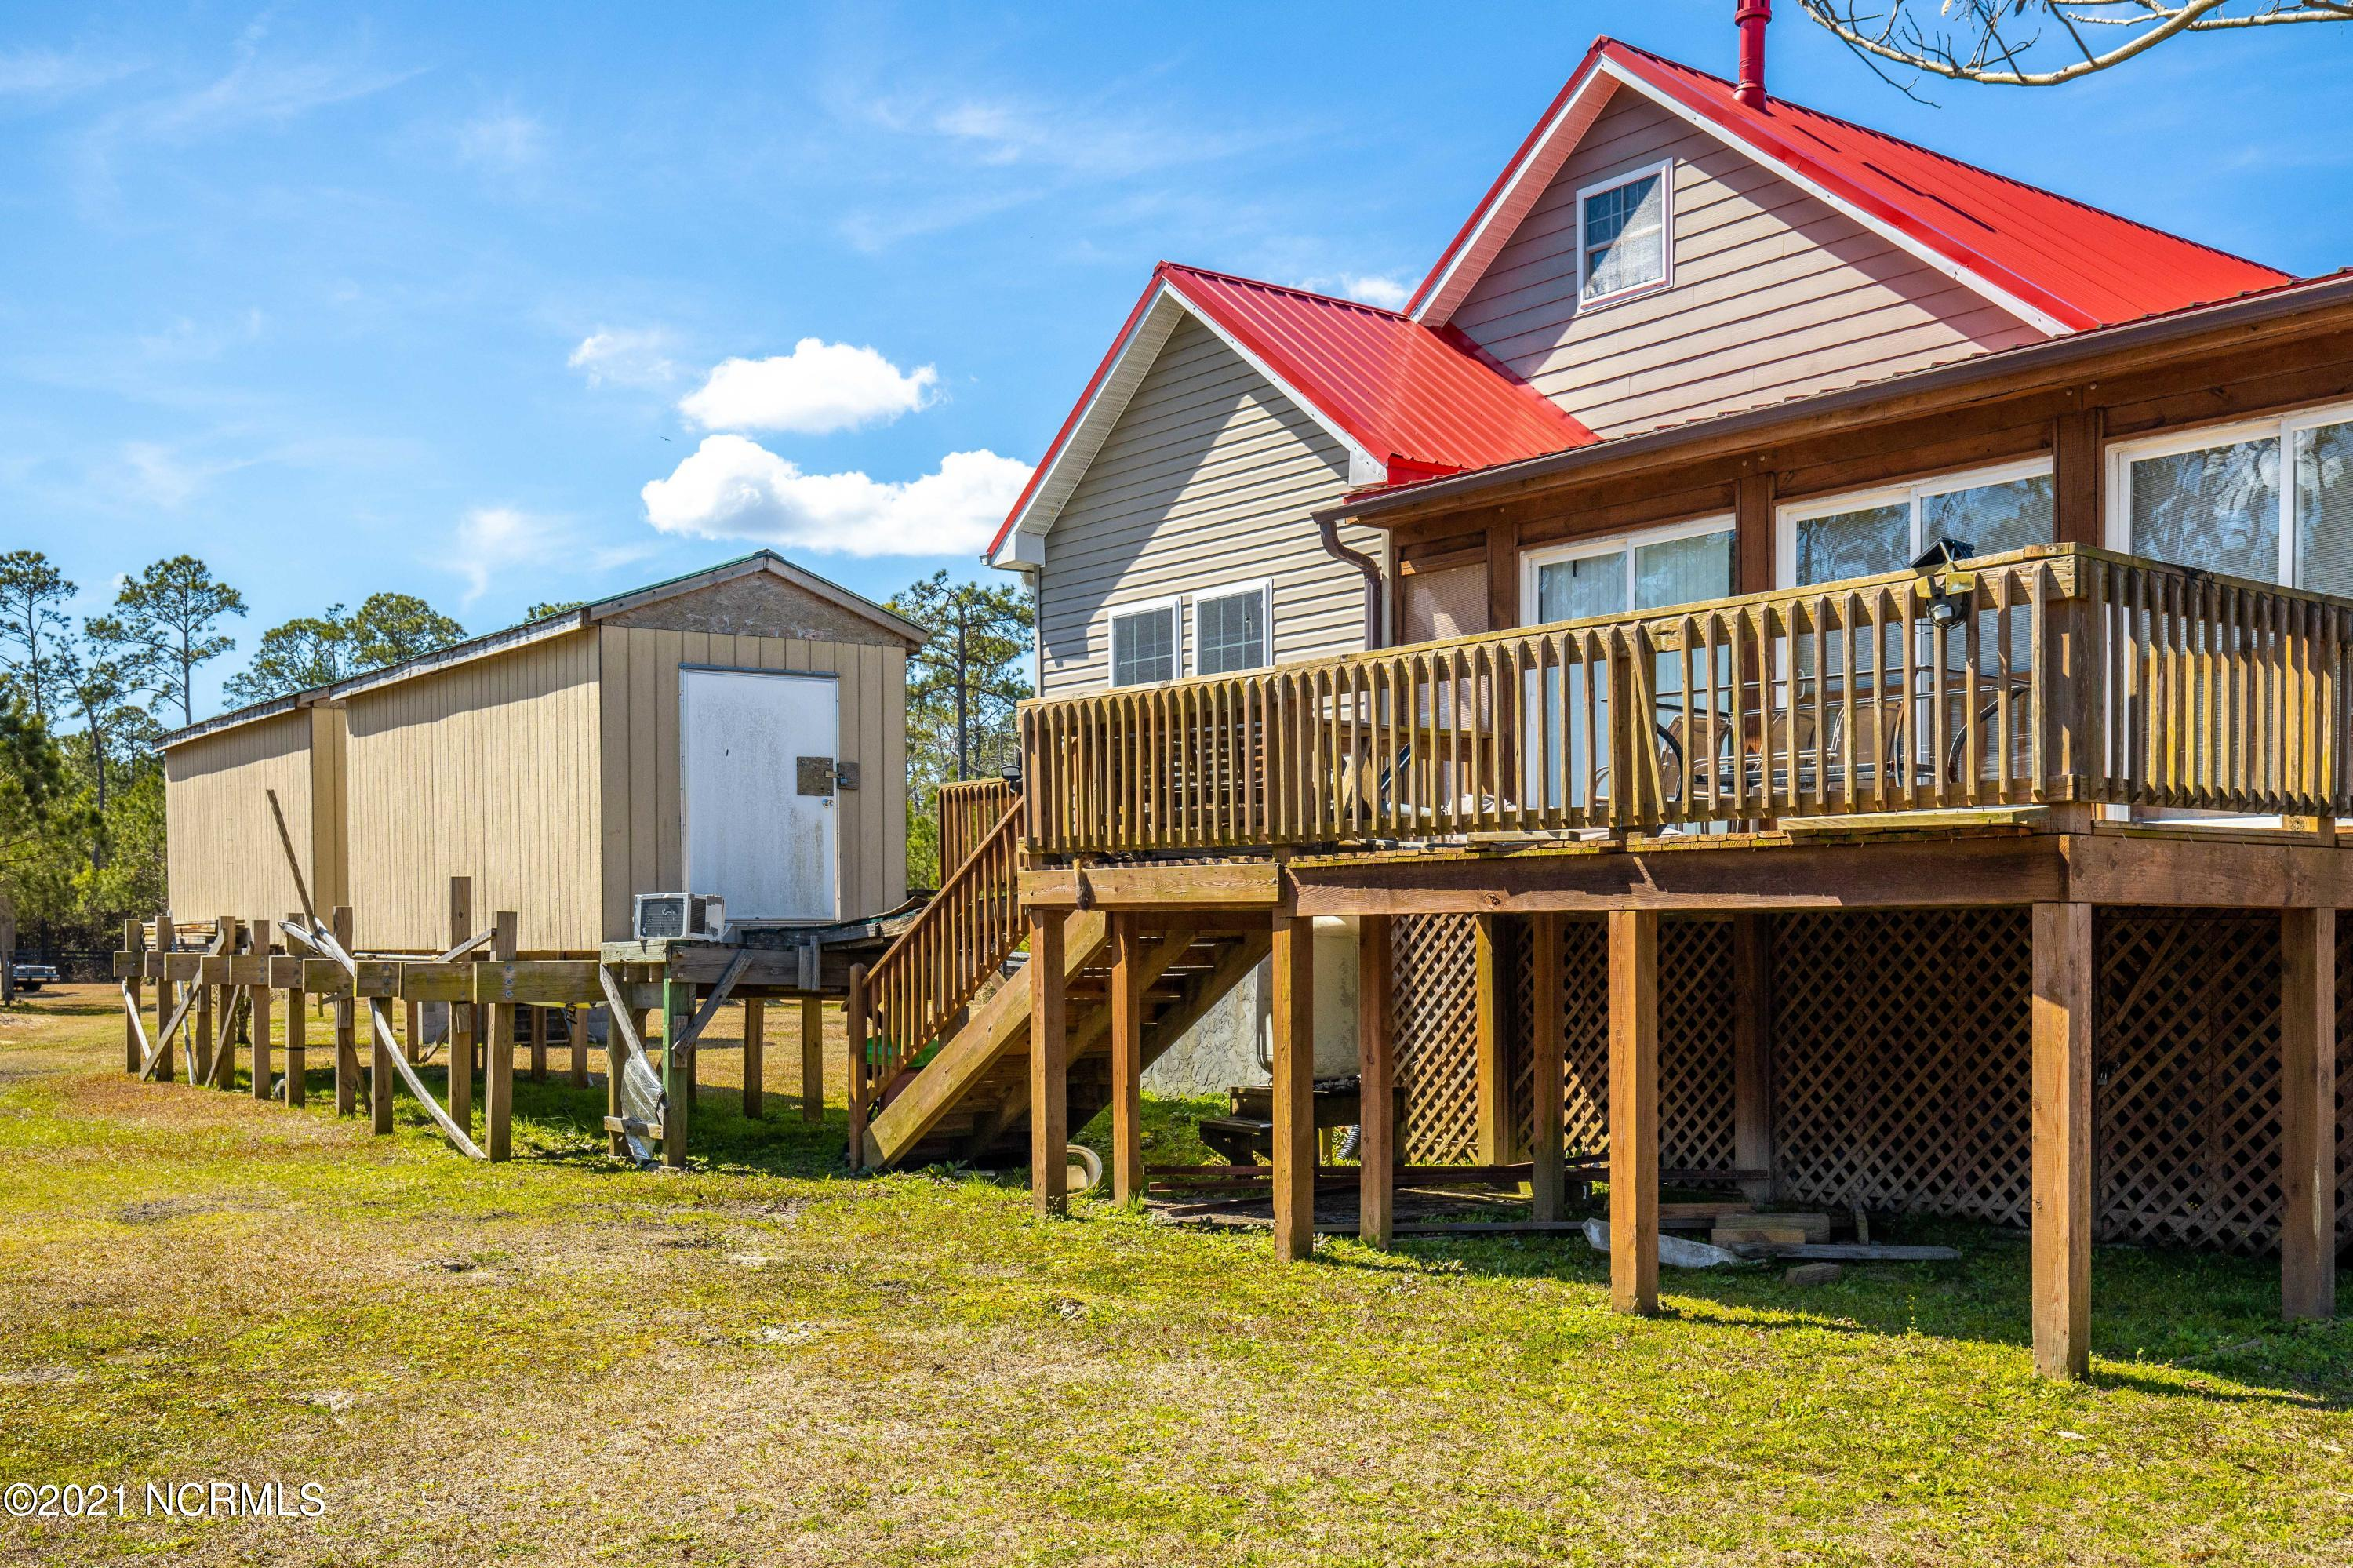 1485&1500 River Drive, Havelock, North Carolina 28532, 3 Bedrooms Bedrooms, 6 Rooms Rooms,2 BathroomsBathrooms,Manufactured home,For sale,River Drive,100263289